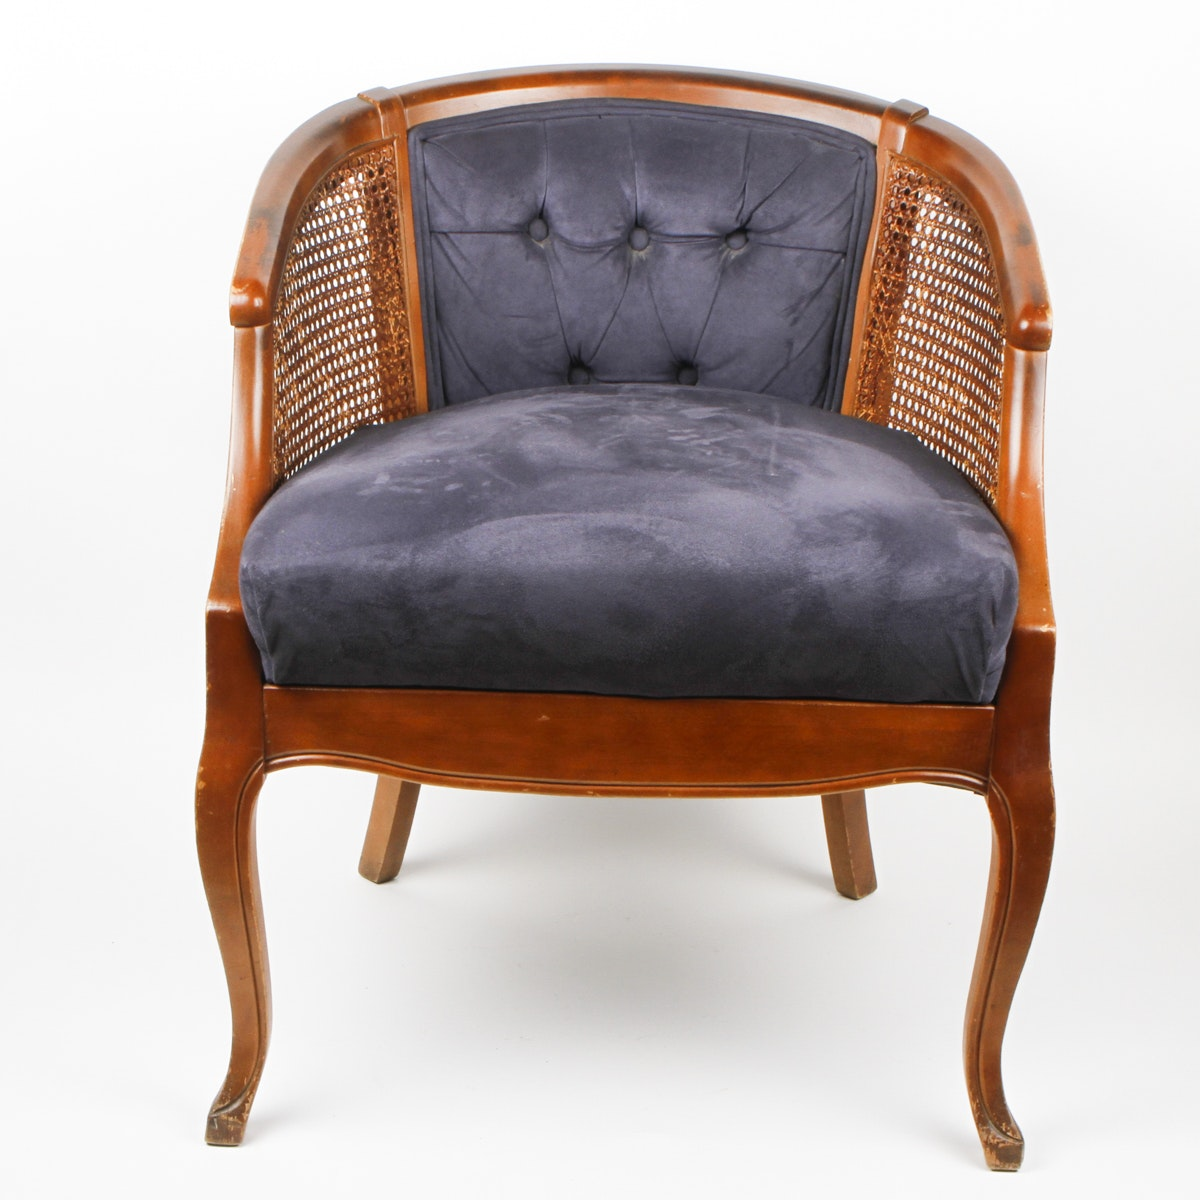 Merveilleux Vintage French Provincial Style Barrel Chair ...